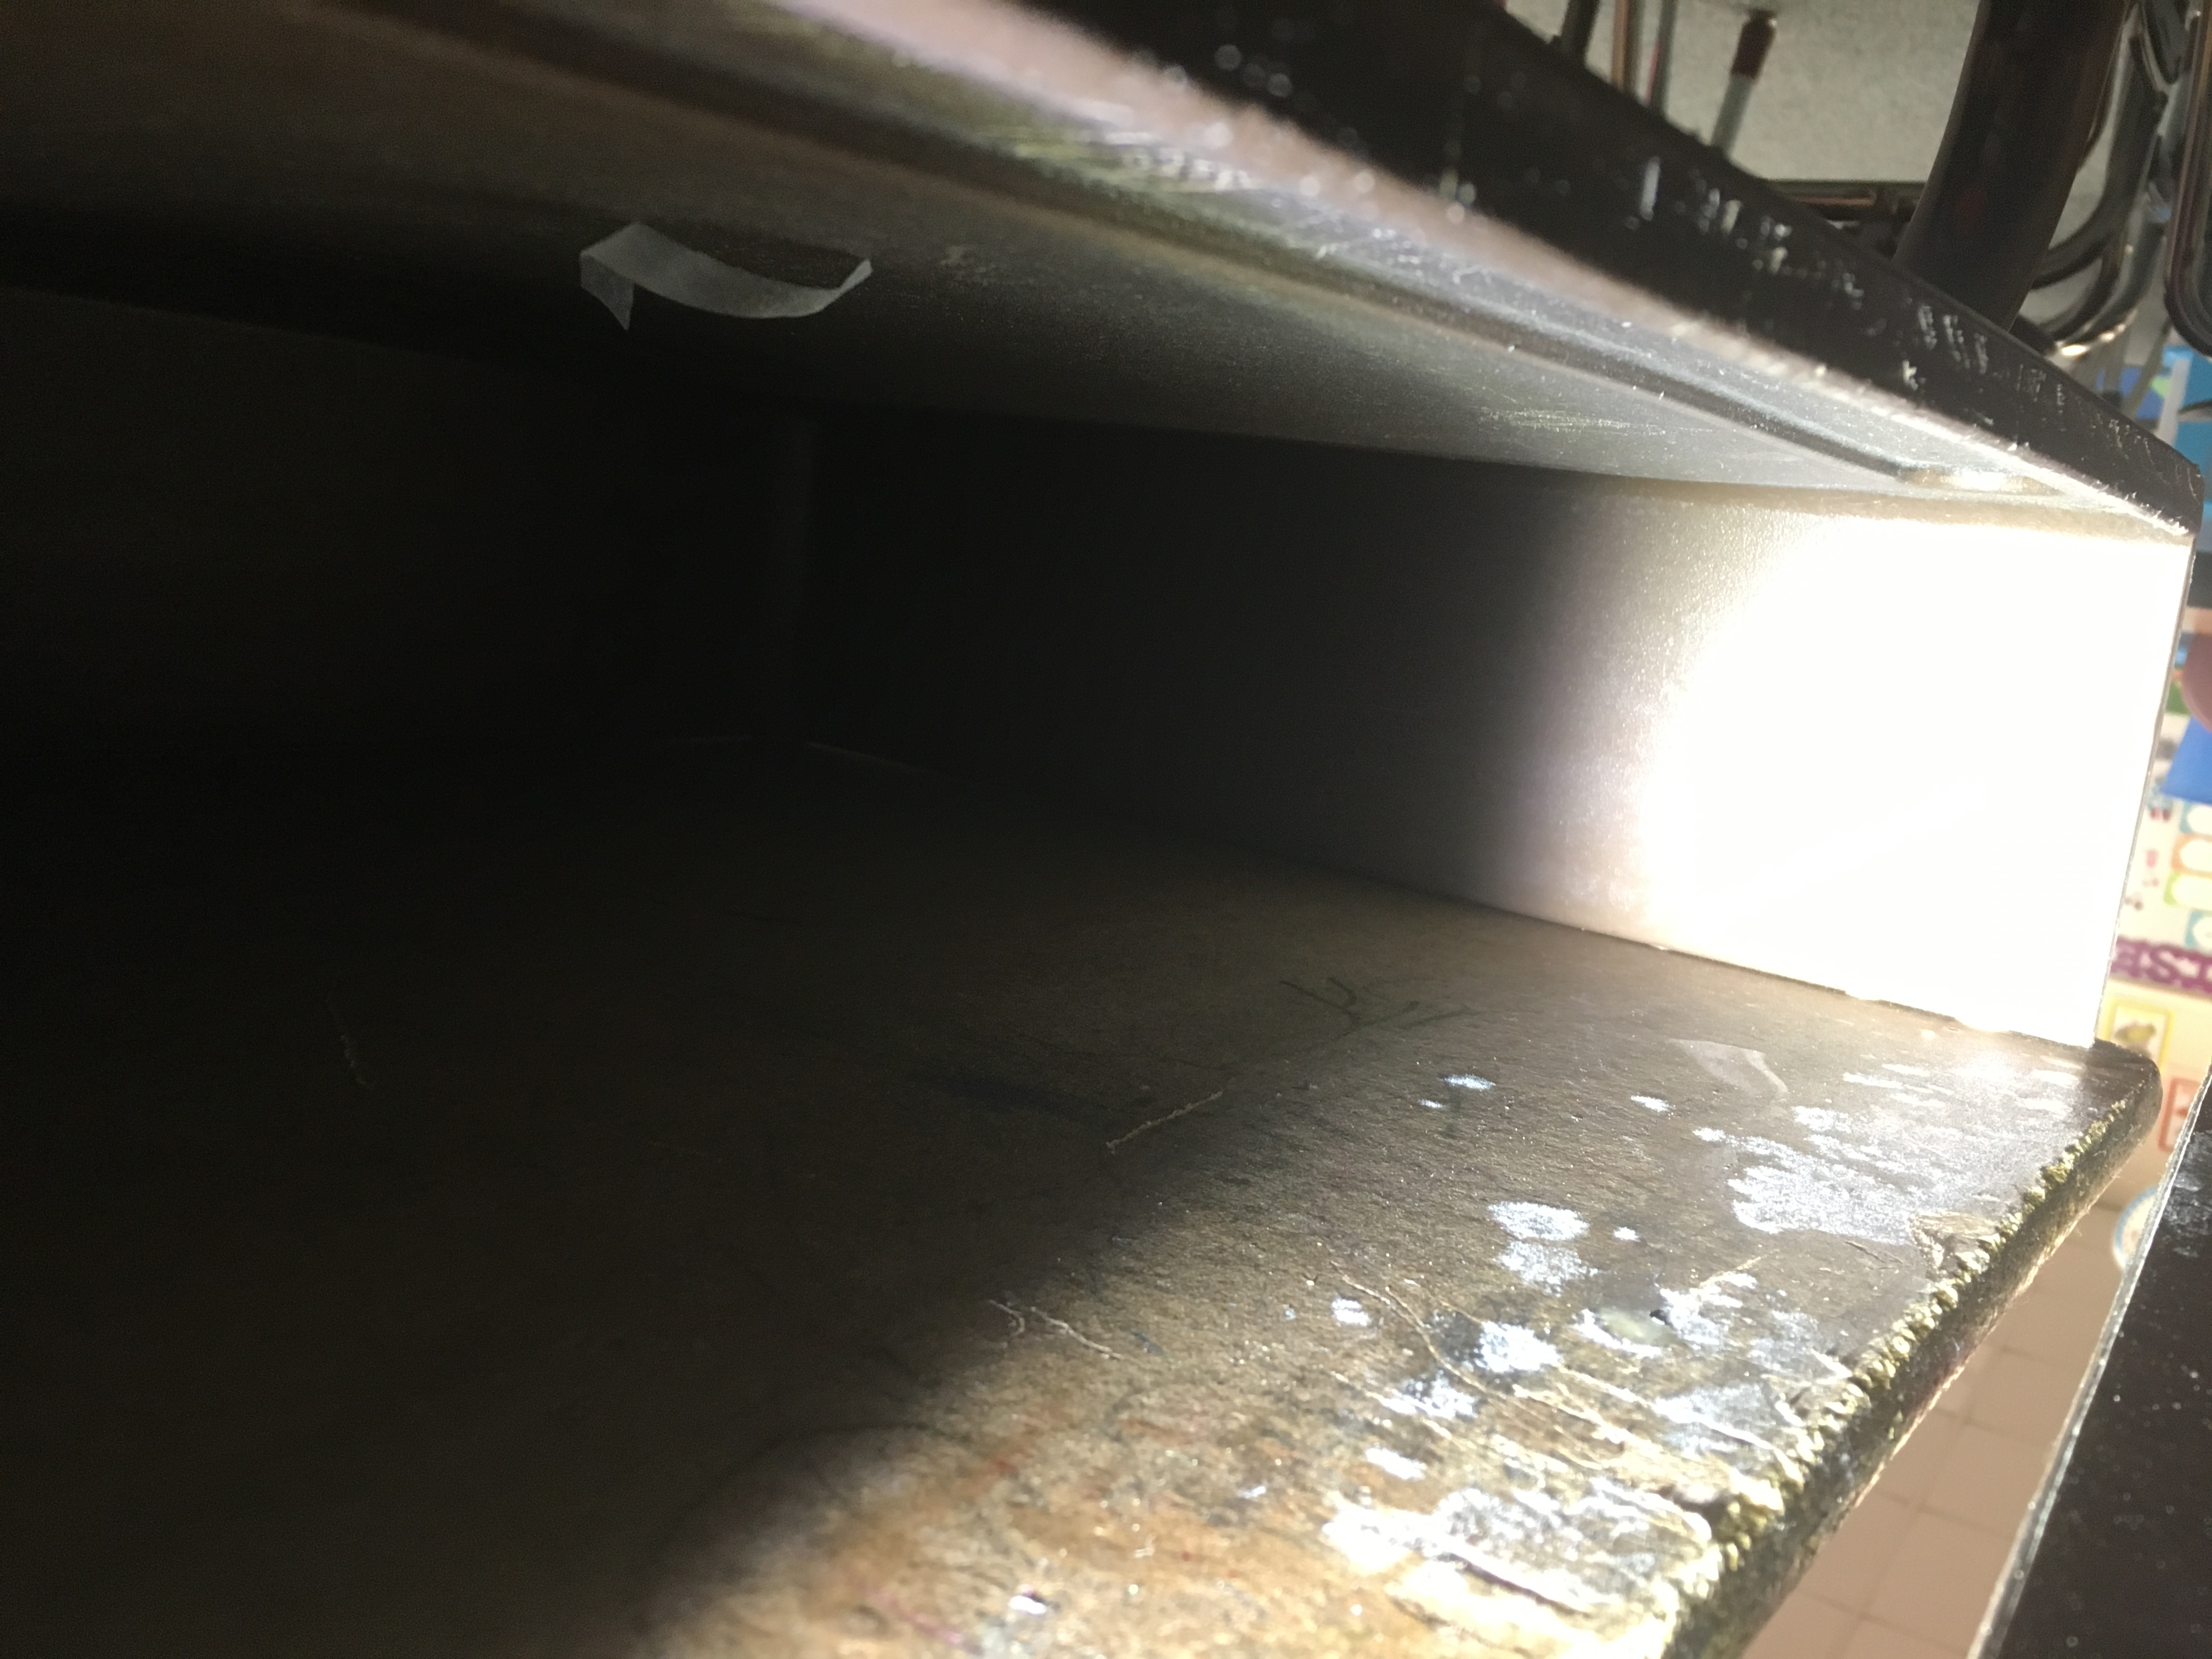 Mold Growth inside School desk